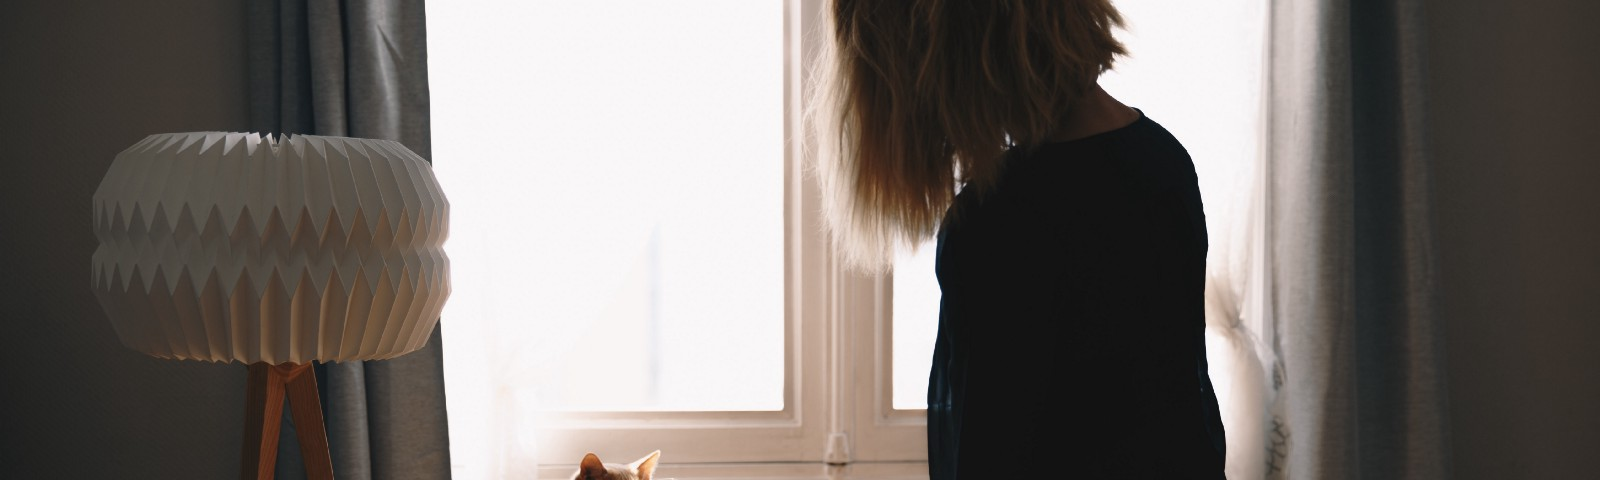 A girl sits on a table looking out the window with her orange cat beside her looking at her. Her back is to the viewer.